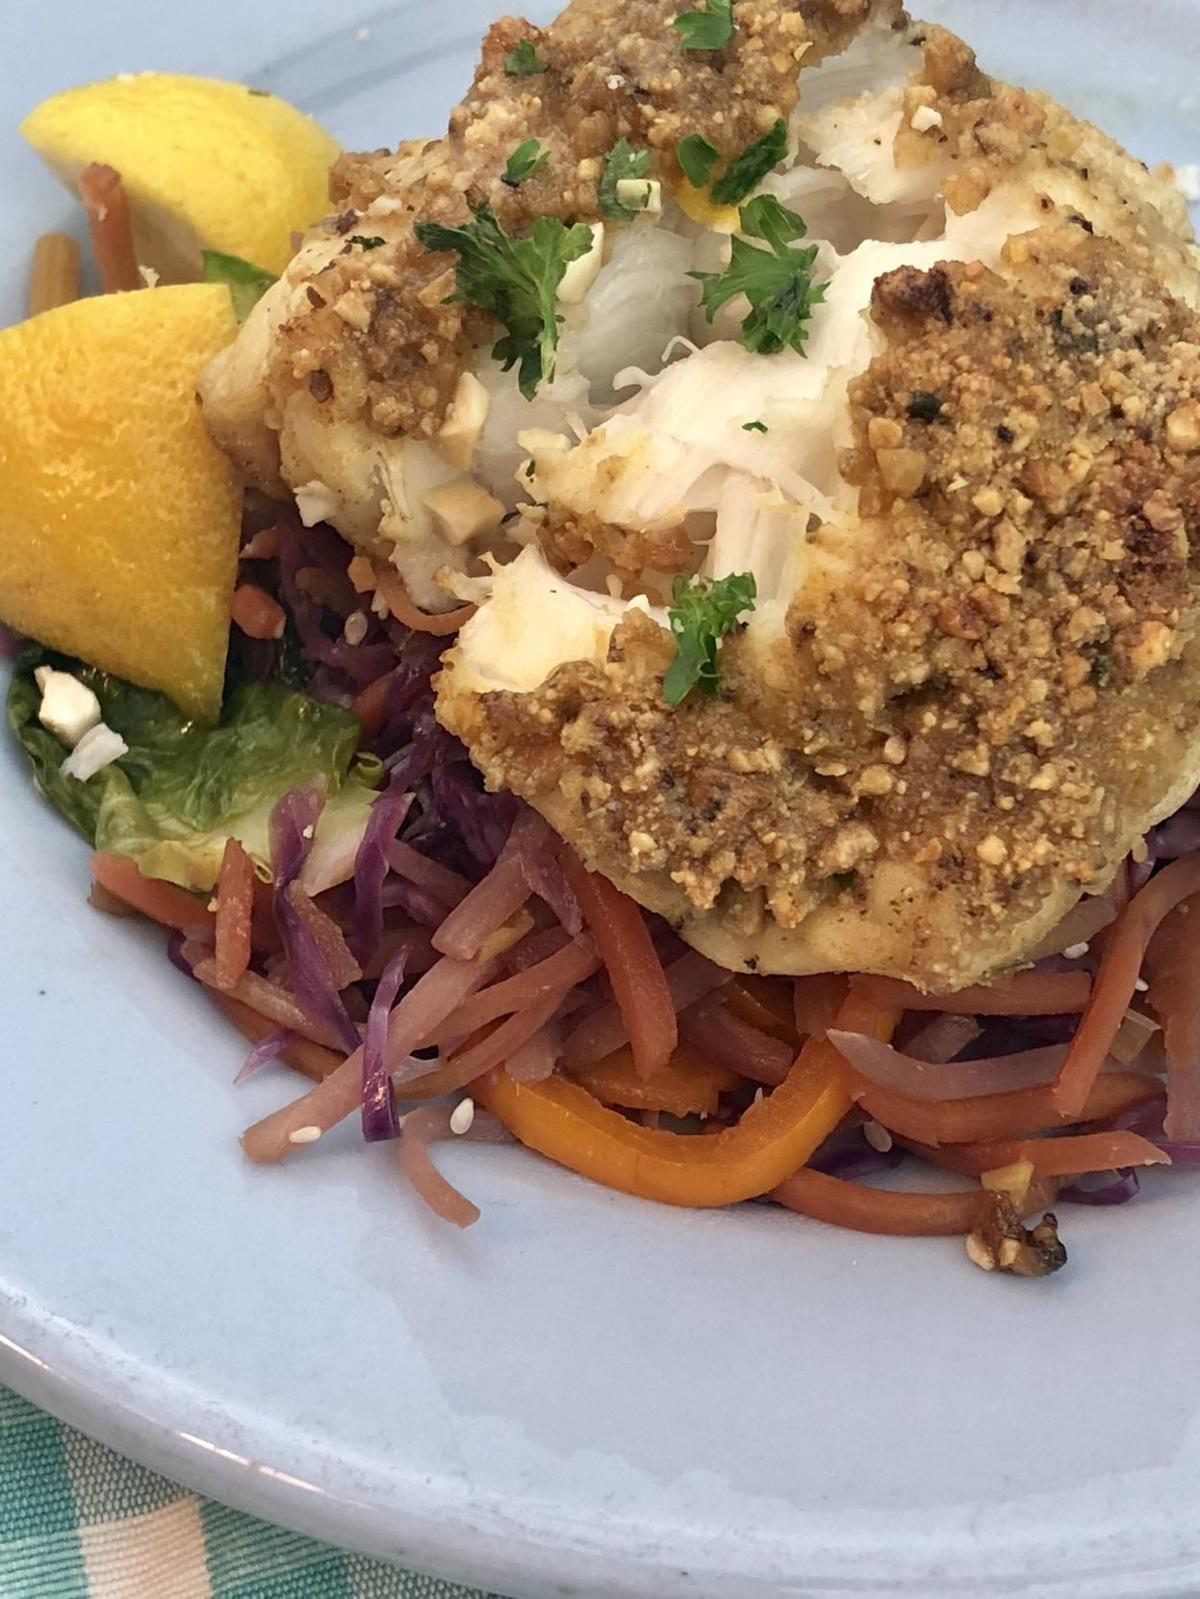 Seared monkfish with carrot slaw saute